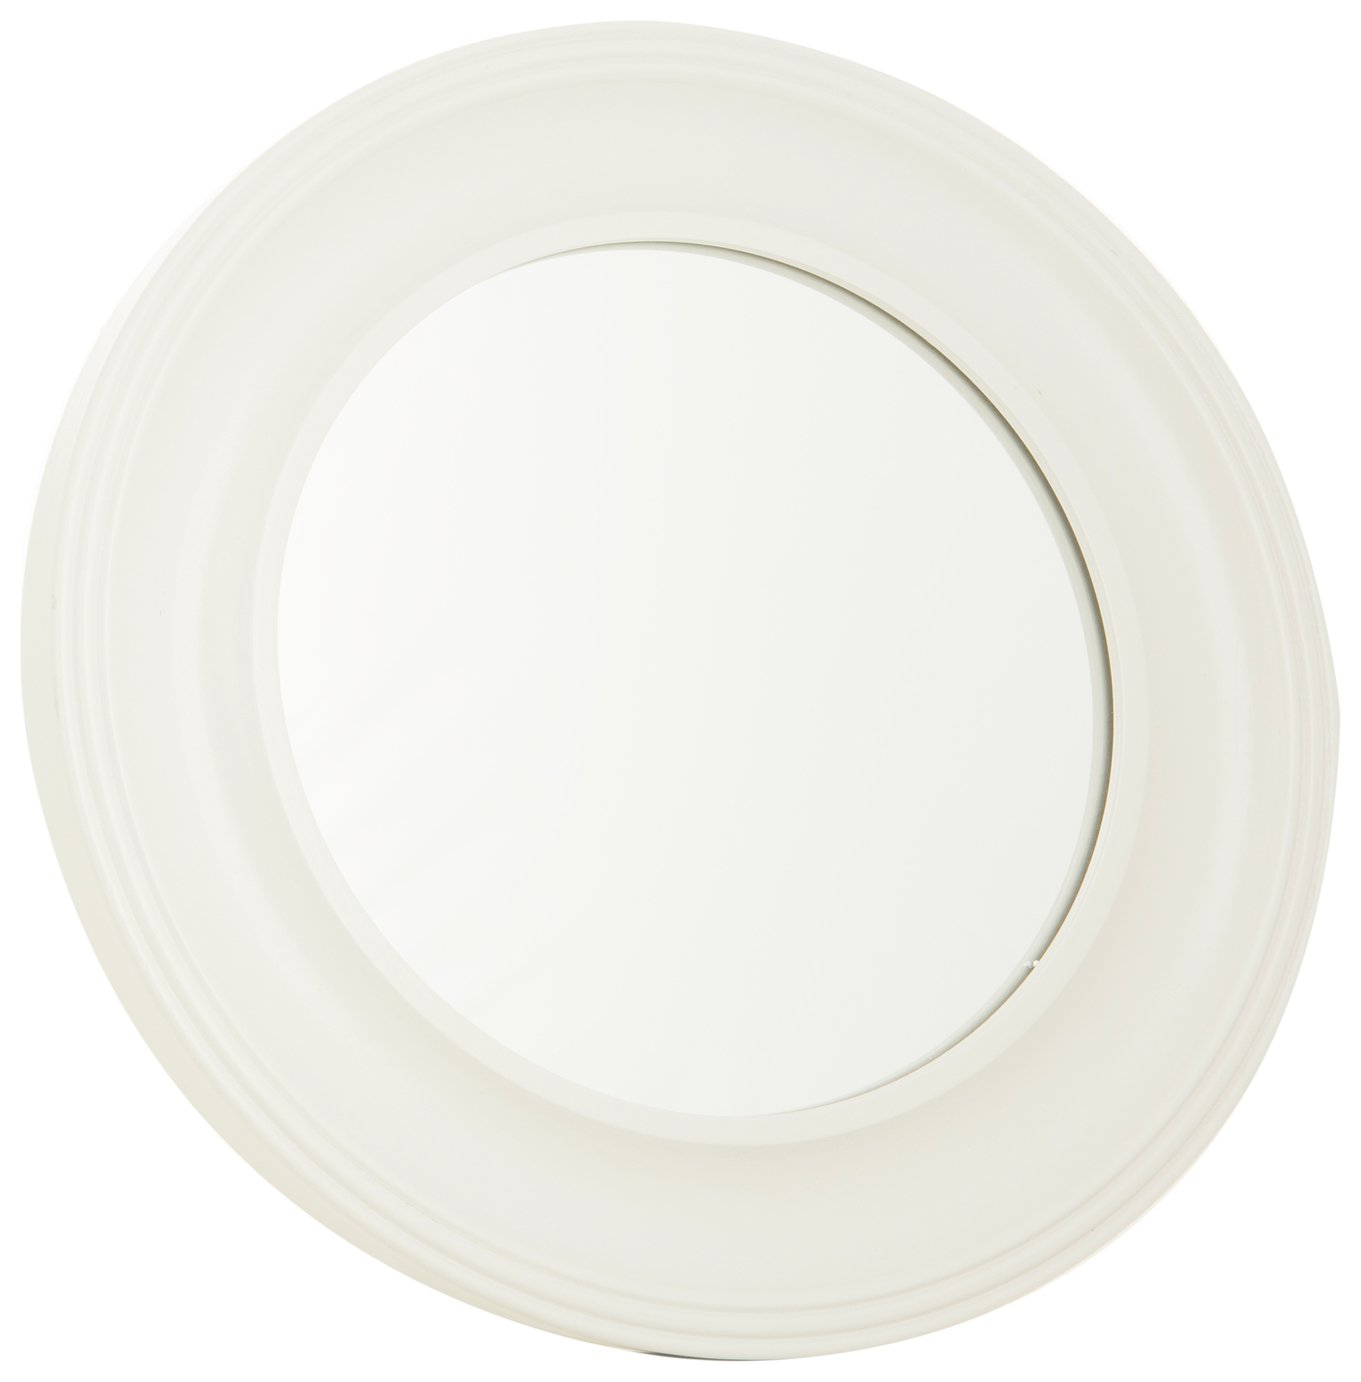 Sainsbury's Home 40cm Round Mirror - Grey